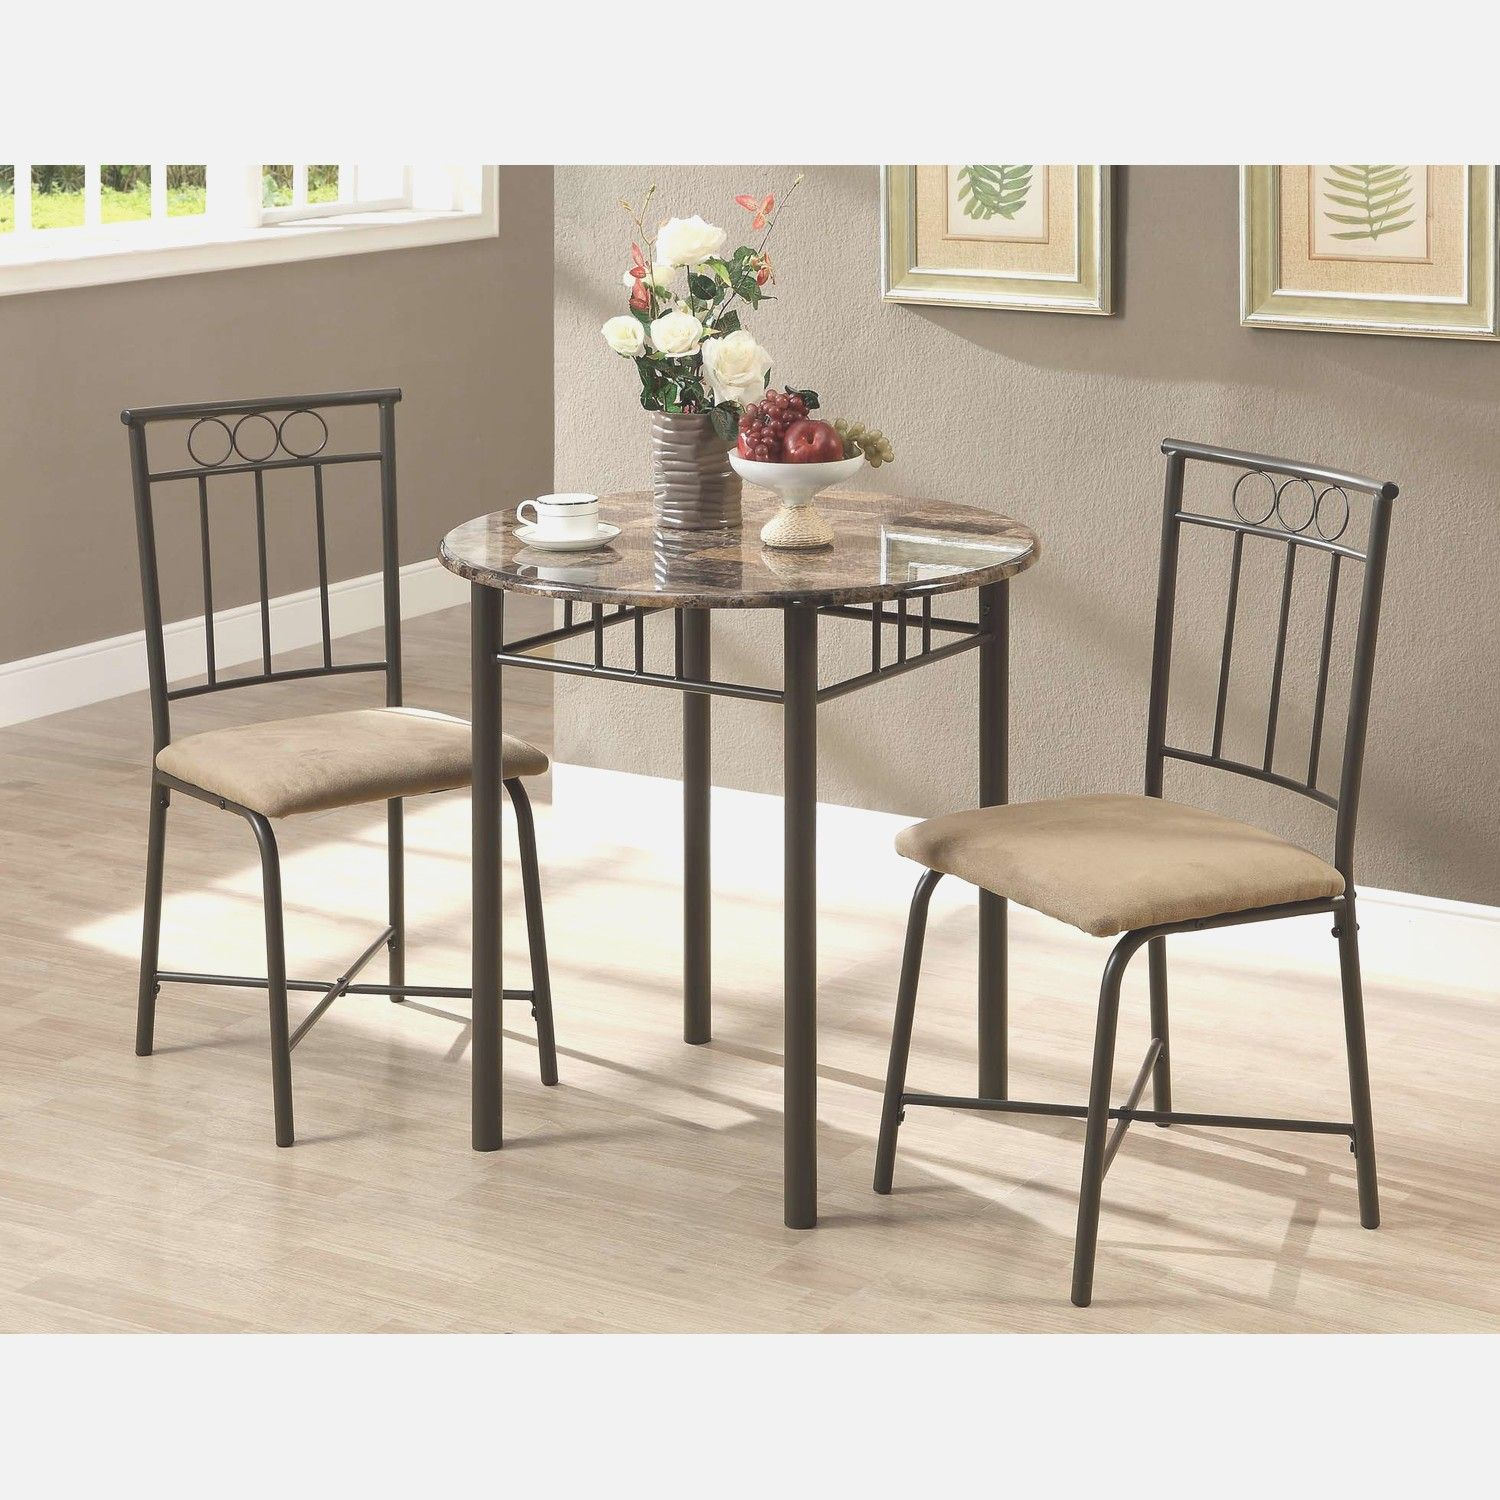 Indoor Cafe Table and Chairs - bistro table and chairs for indoors ...